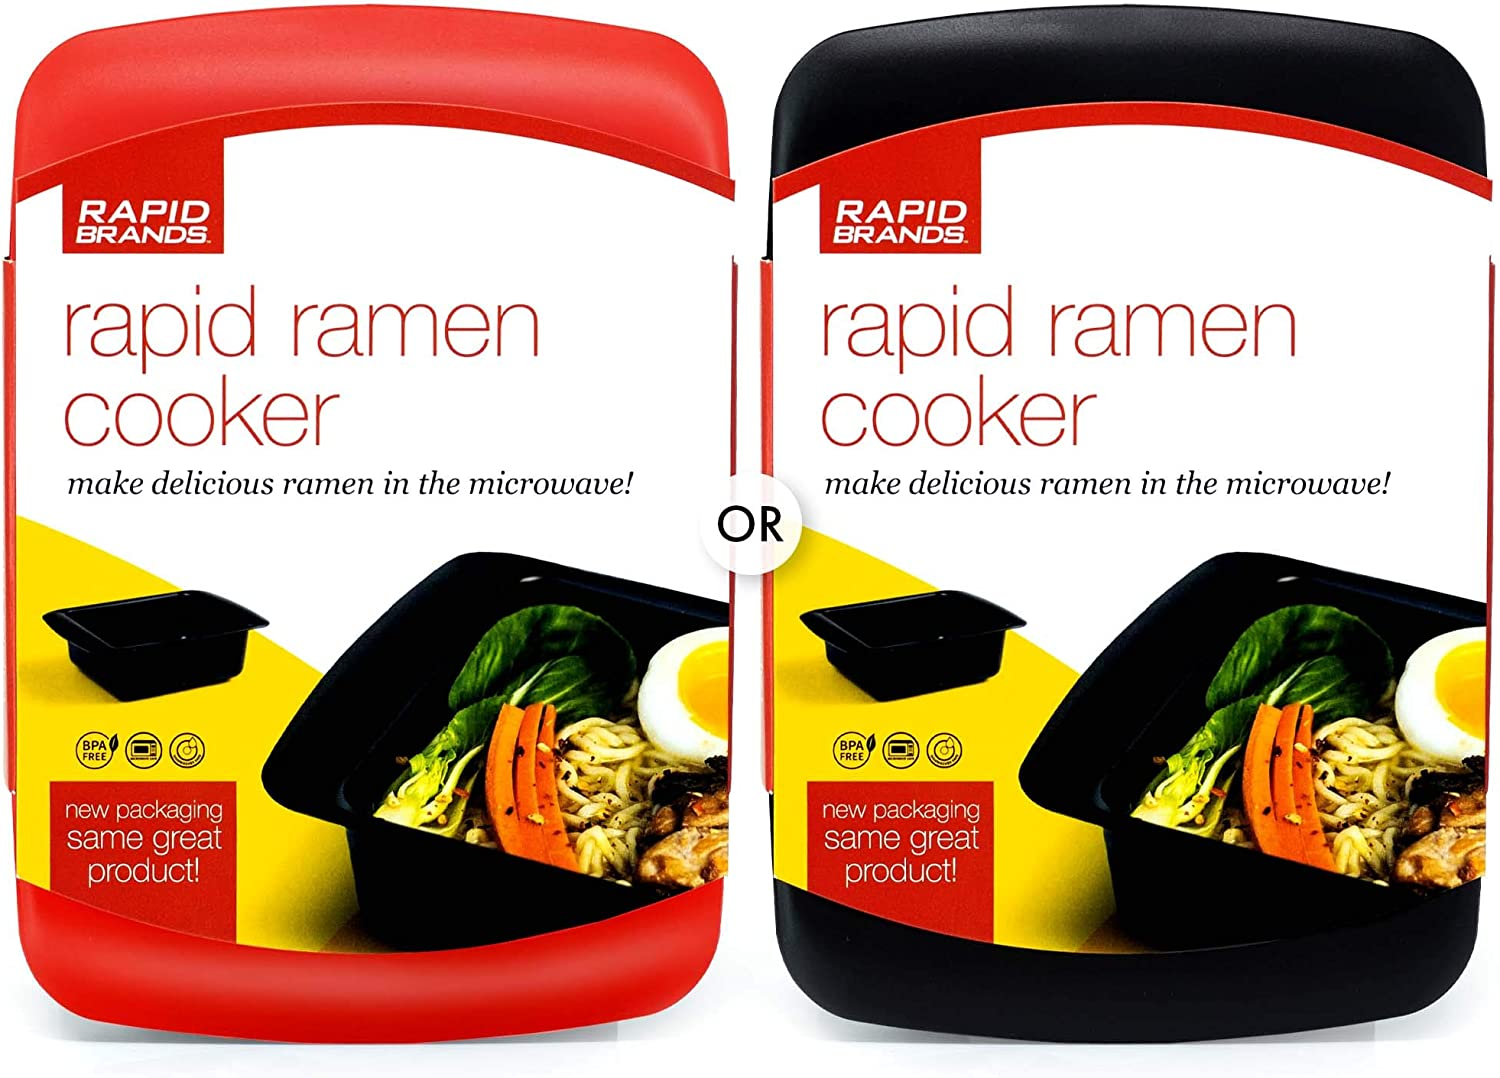 Rapid Ramen Cooker - Microwave Ramen in 3 Minutes - BPA Free and Dishwasher Safe - Mystery (Red or Black)